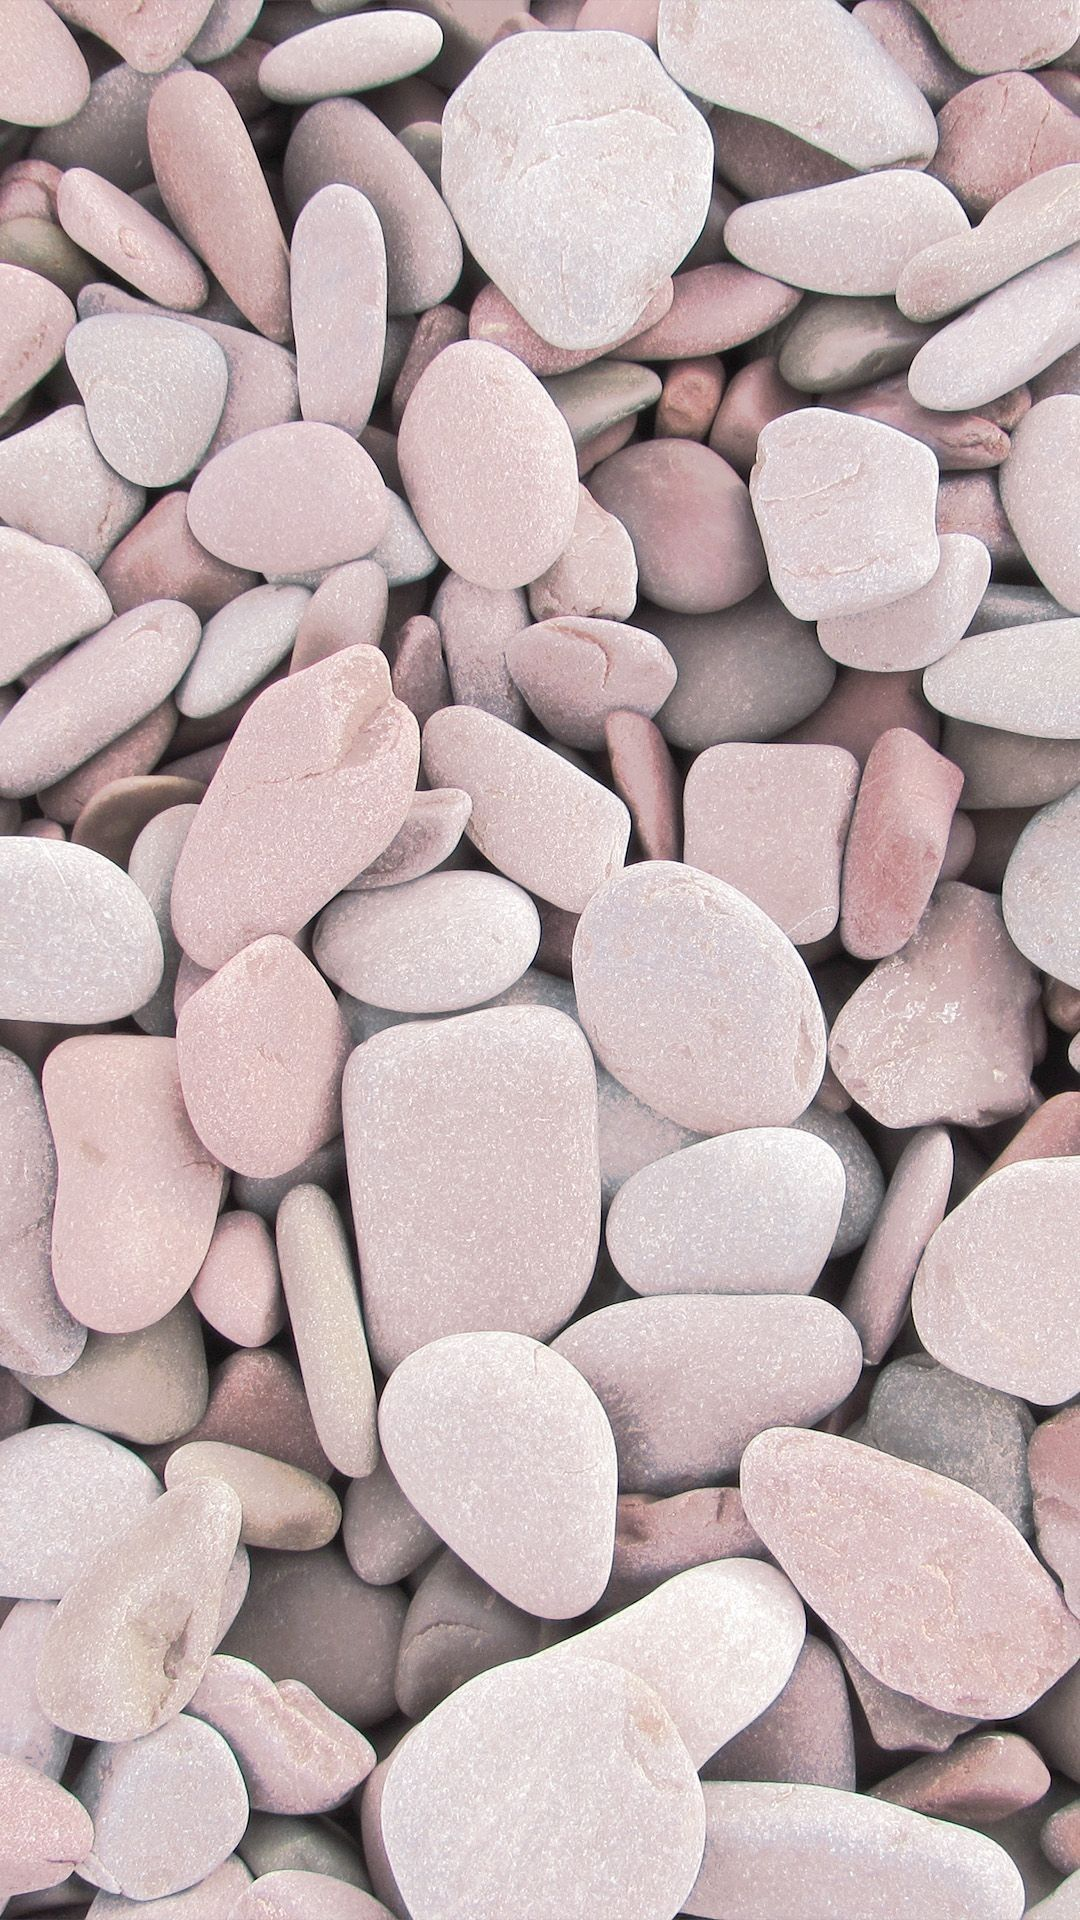 Pink White Grey Rock Stones Iphone Background Cool Wallpaper Beautiful Wallpapers